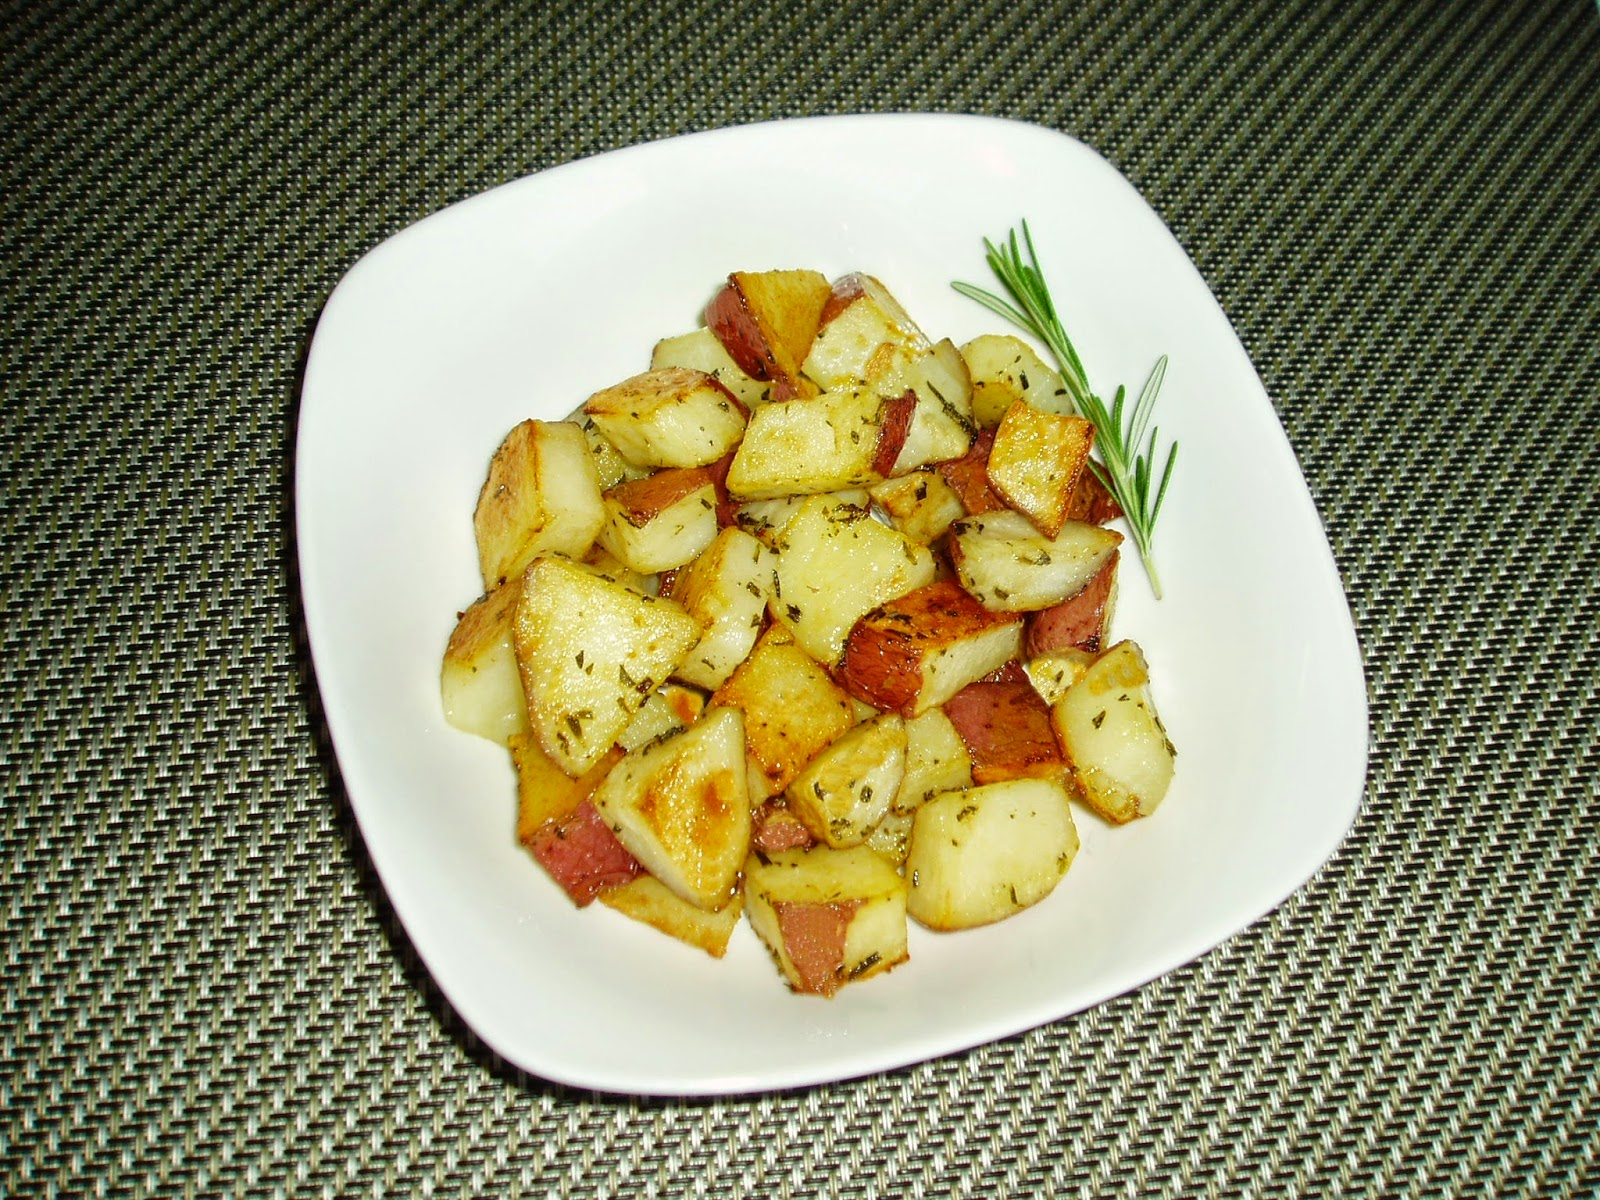 how to cut potatoes for roasting